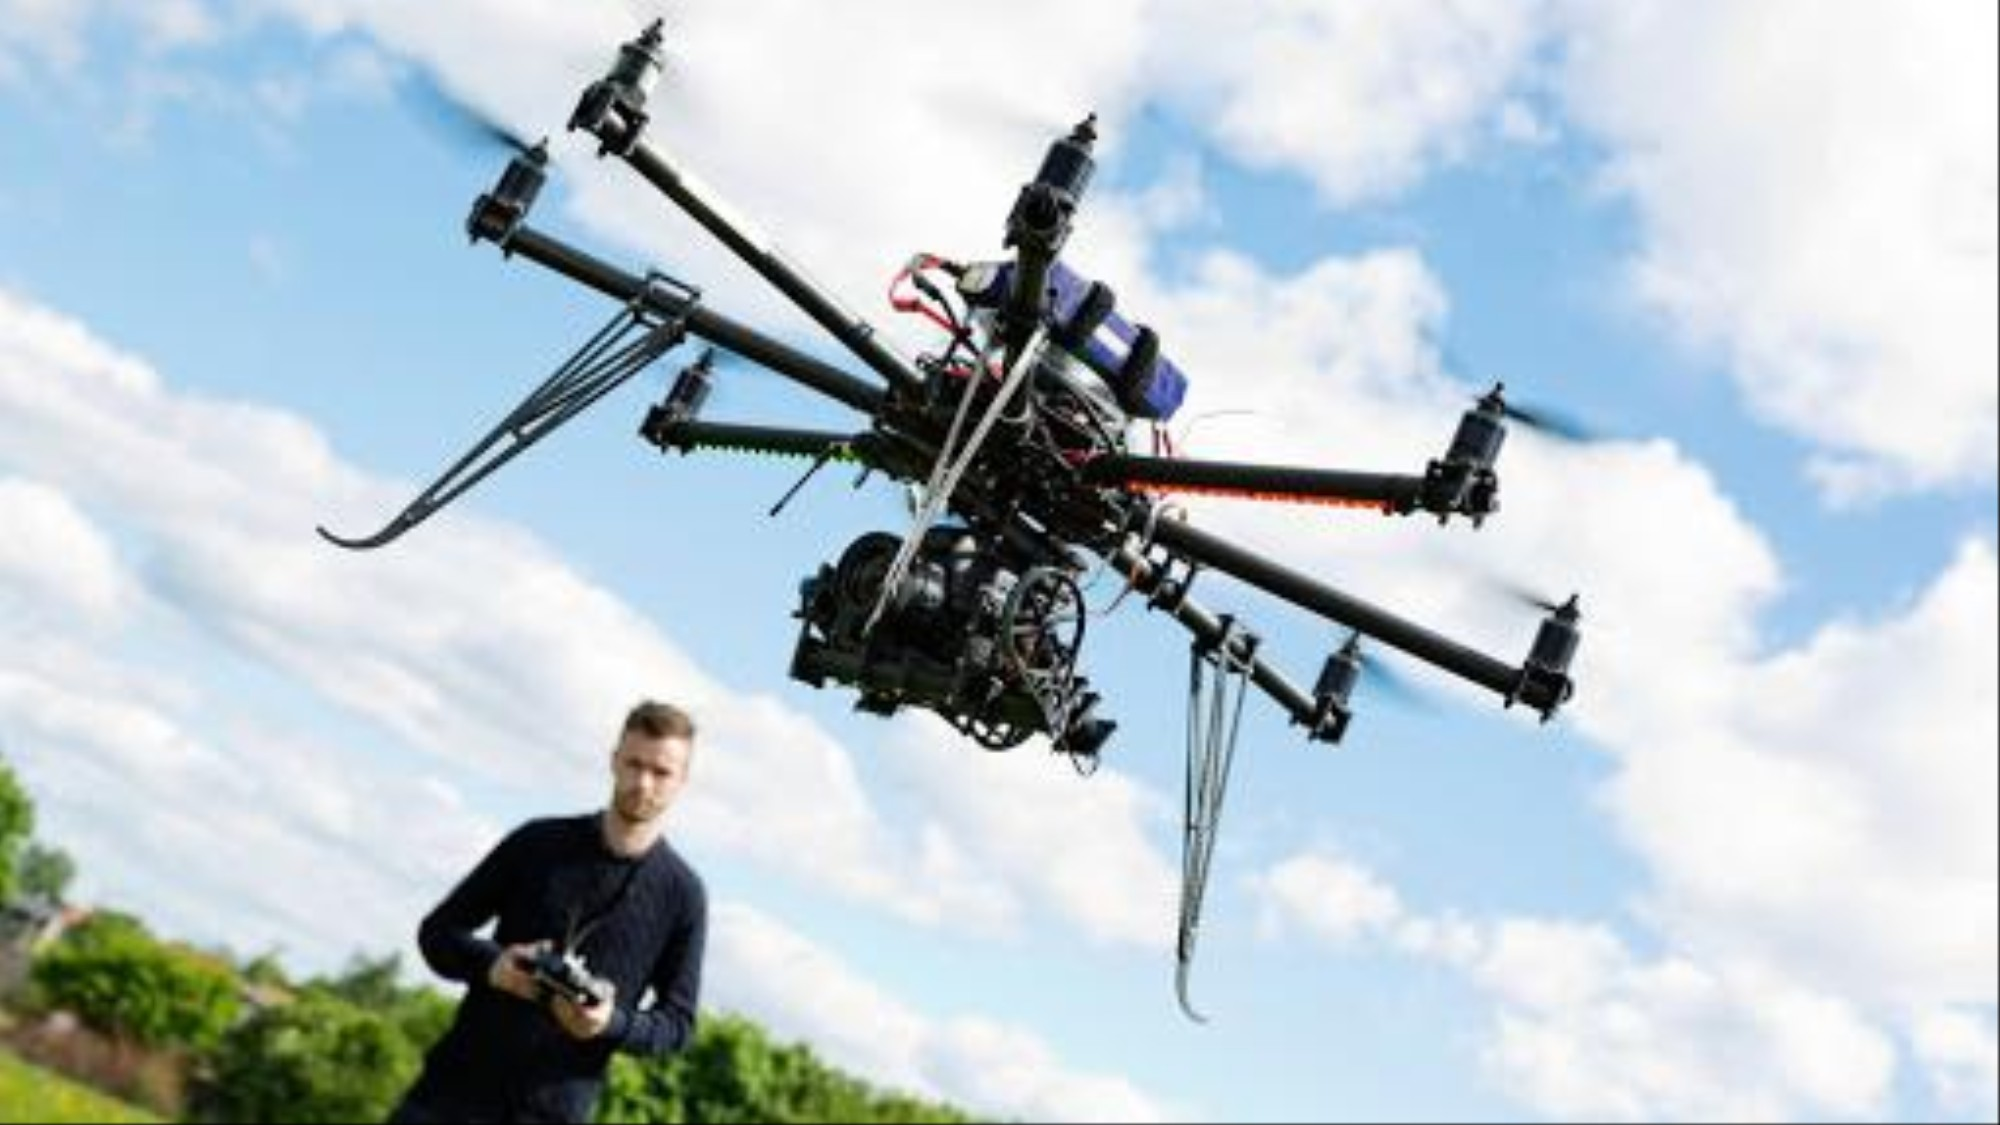 An Open-Source Community Wants to Fix Your Drone with 3D